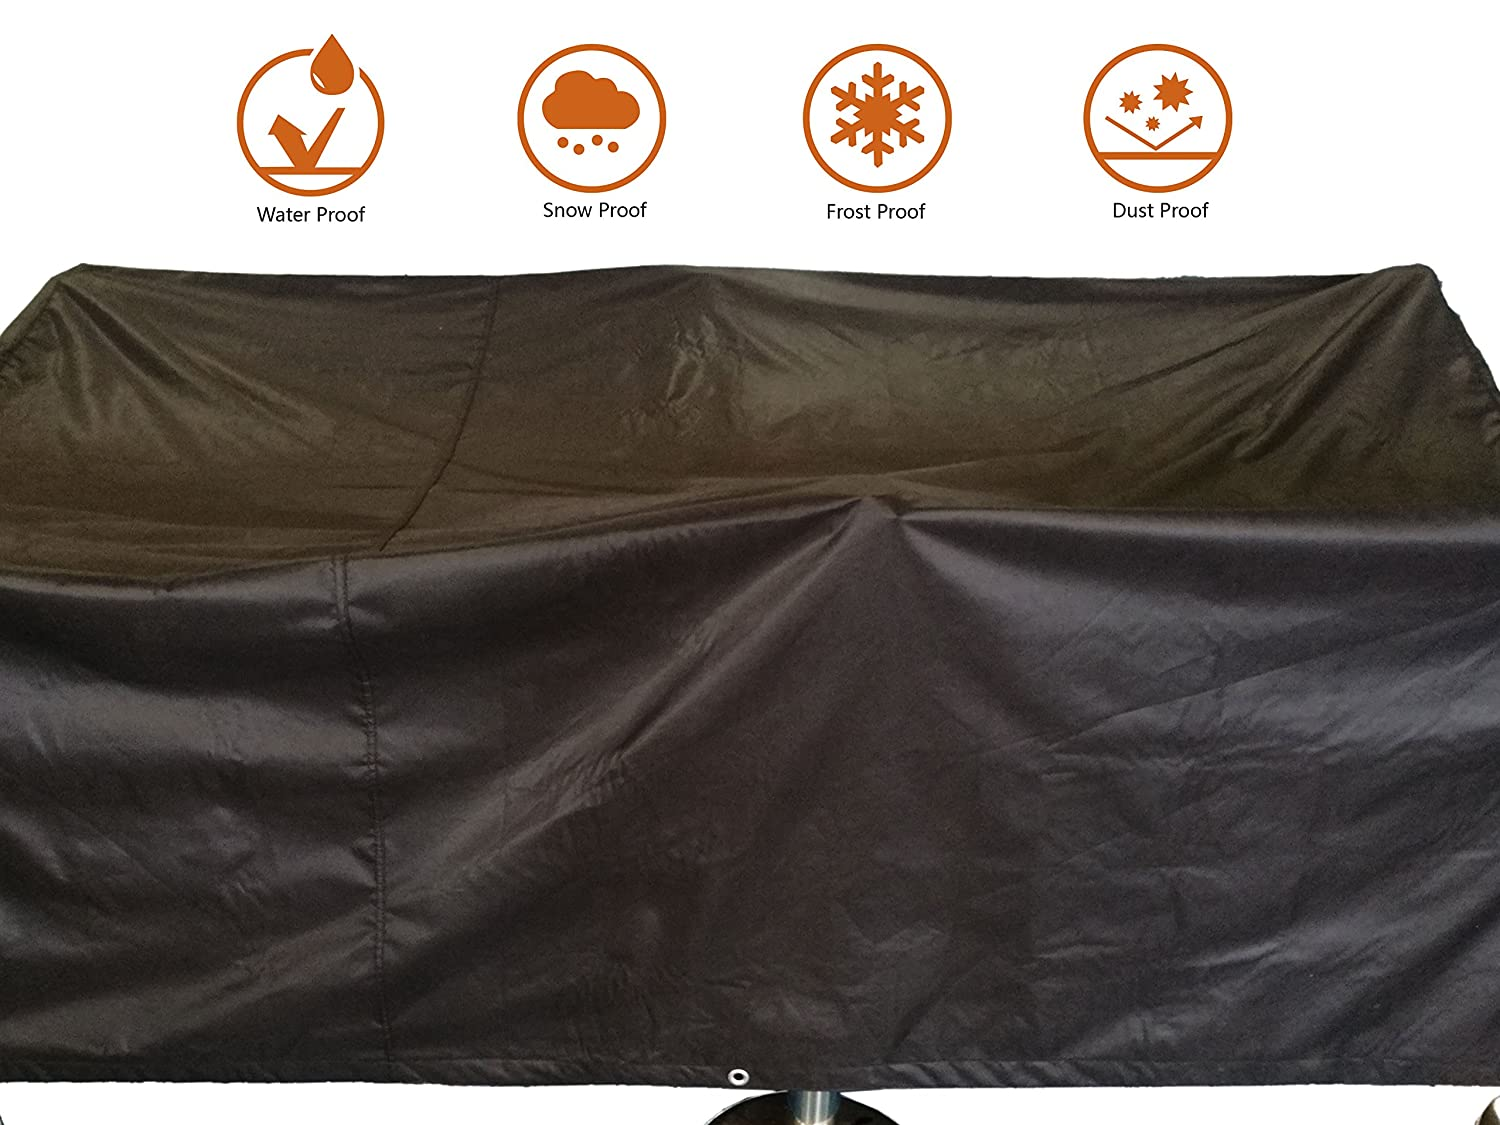 ANSIO Patio Set Cover Outdoor Garden Furniture Cover, Polyester Oxford Material, Water Proof, Dust Proof, 2.1 m Length X 1.1 m Width X 0.7 m Height